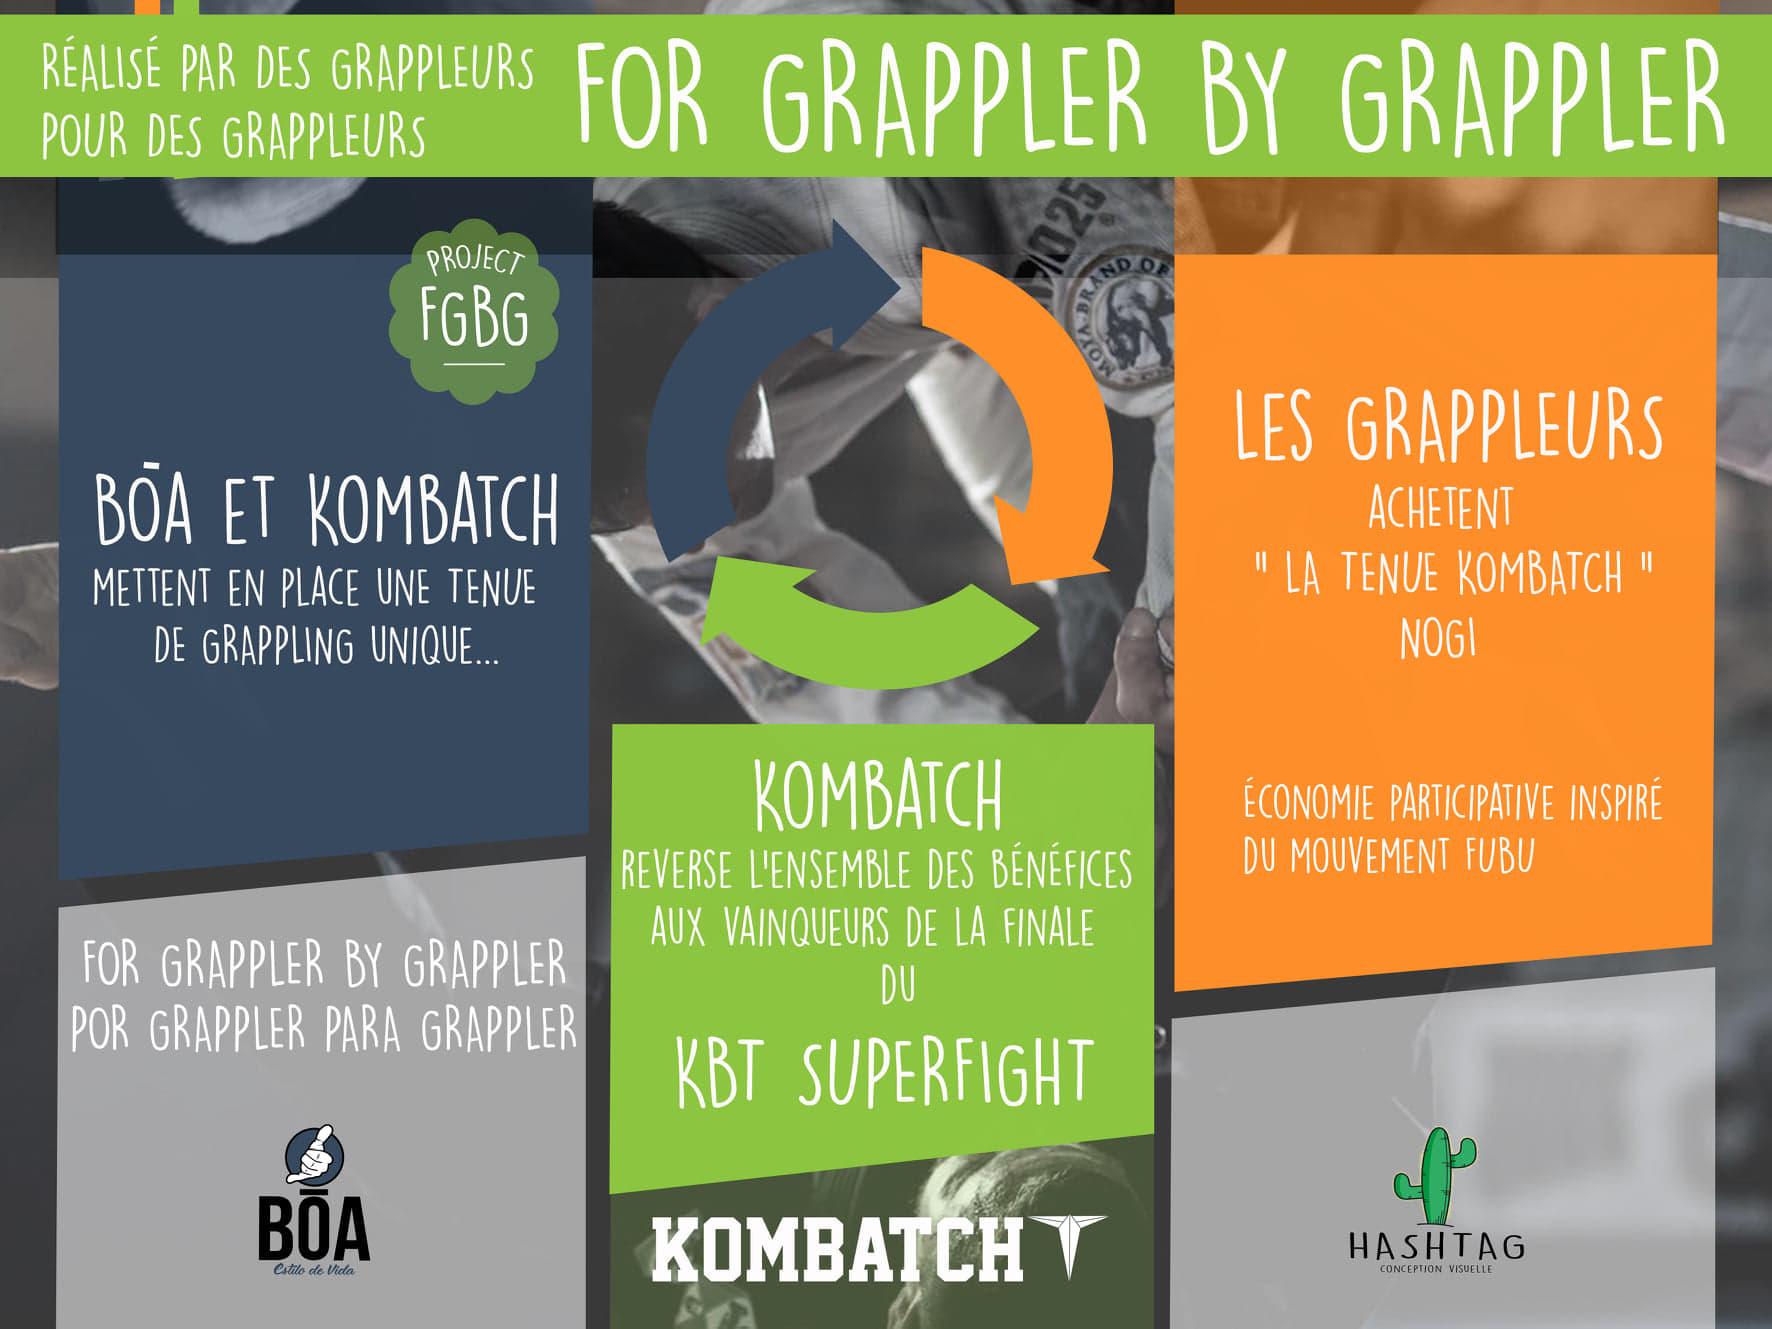 FGBG project For Grappler By Grappler